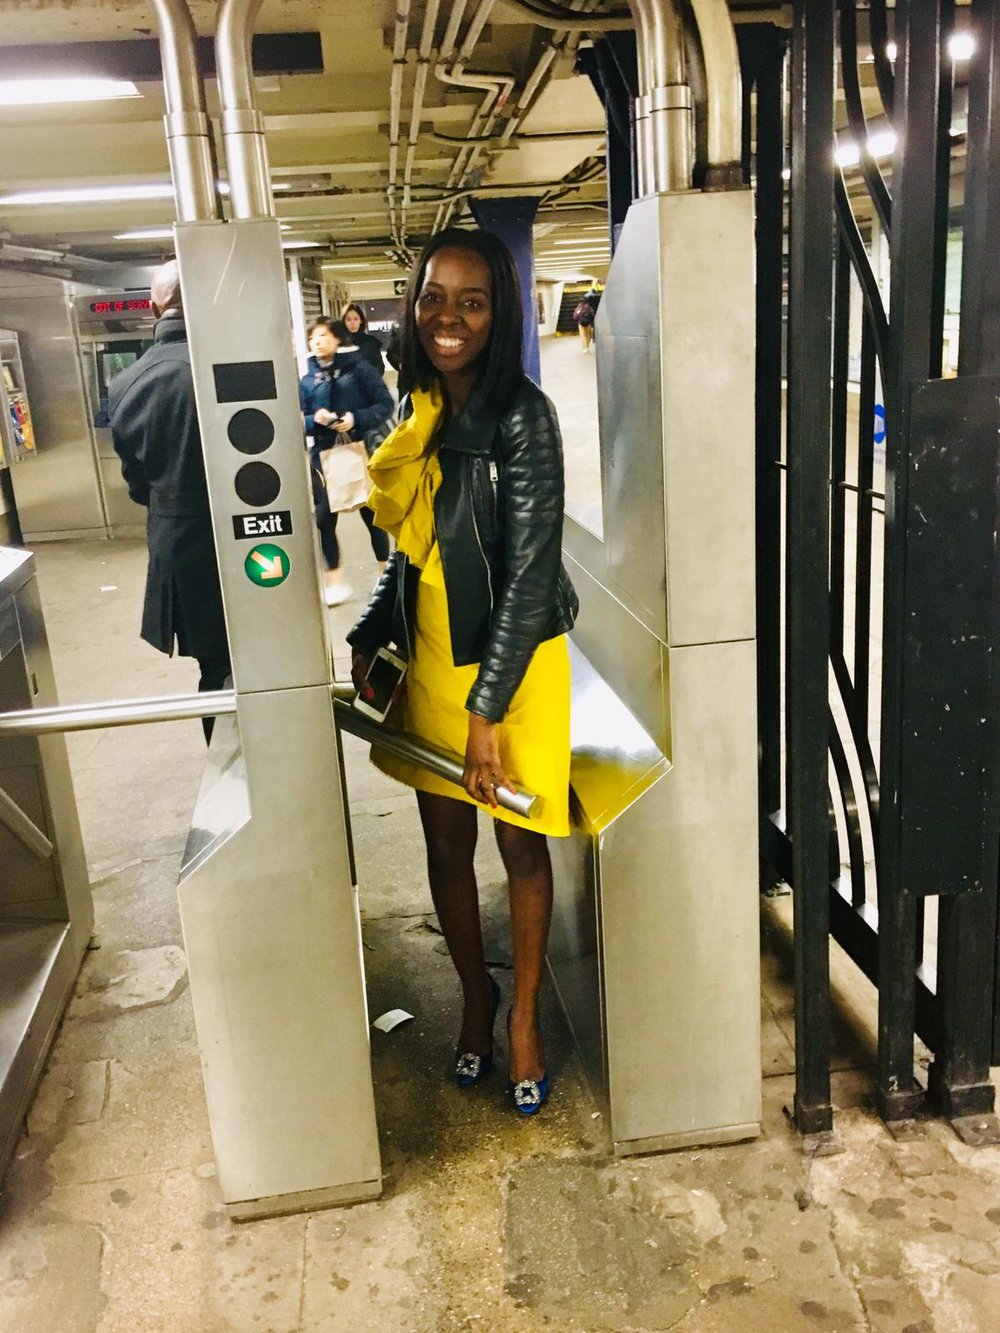 You can't come to new york and not ride on the subway!! These Manolos got baptism by fire - I was daring anyone to try and step on me!!! there would have been blood!!